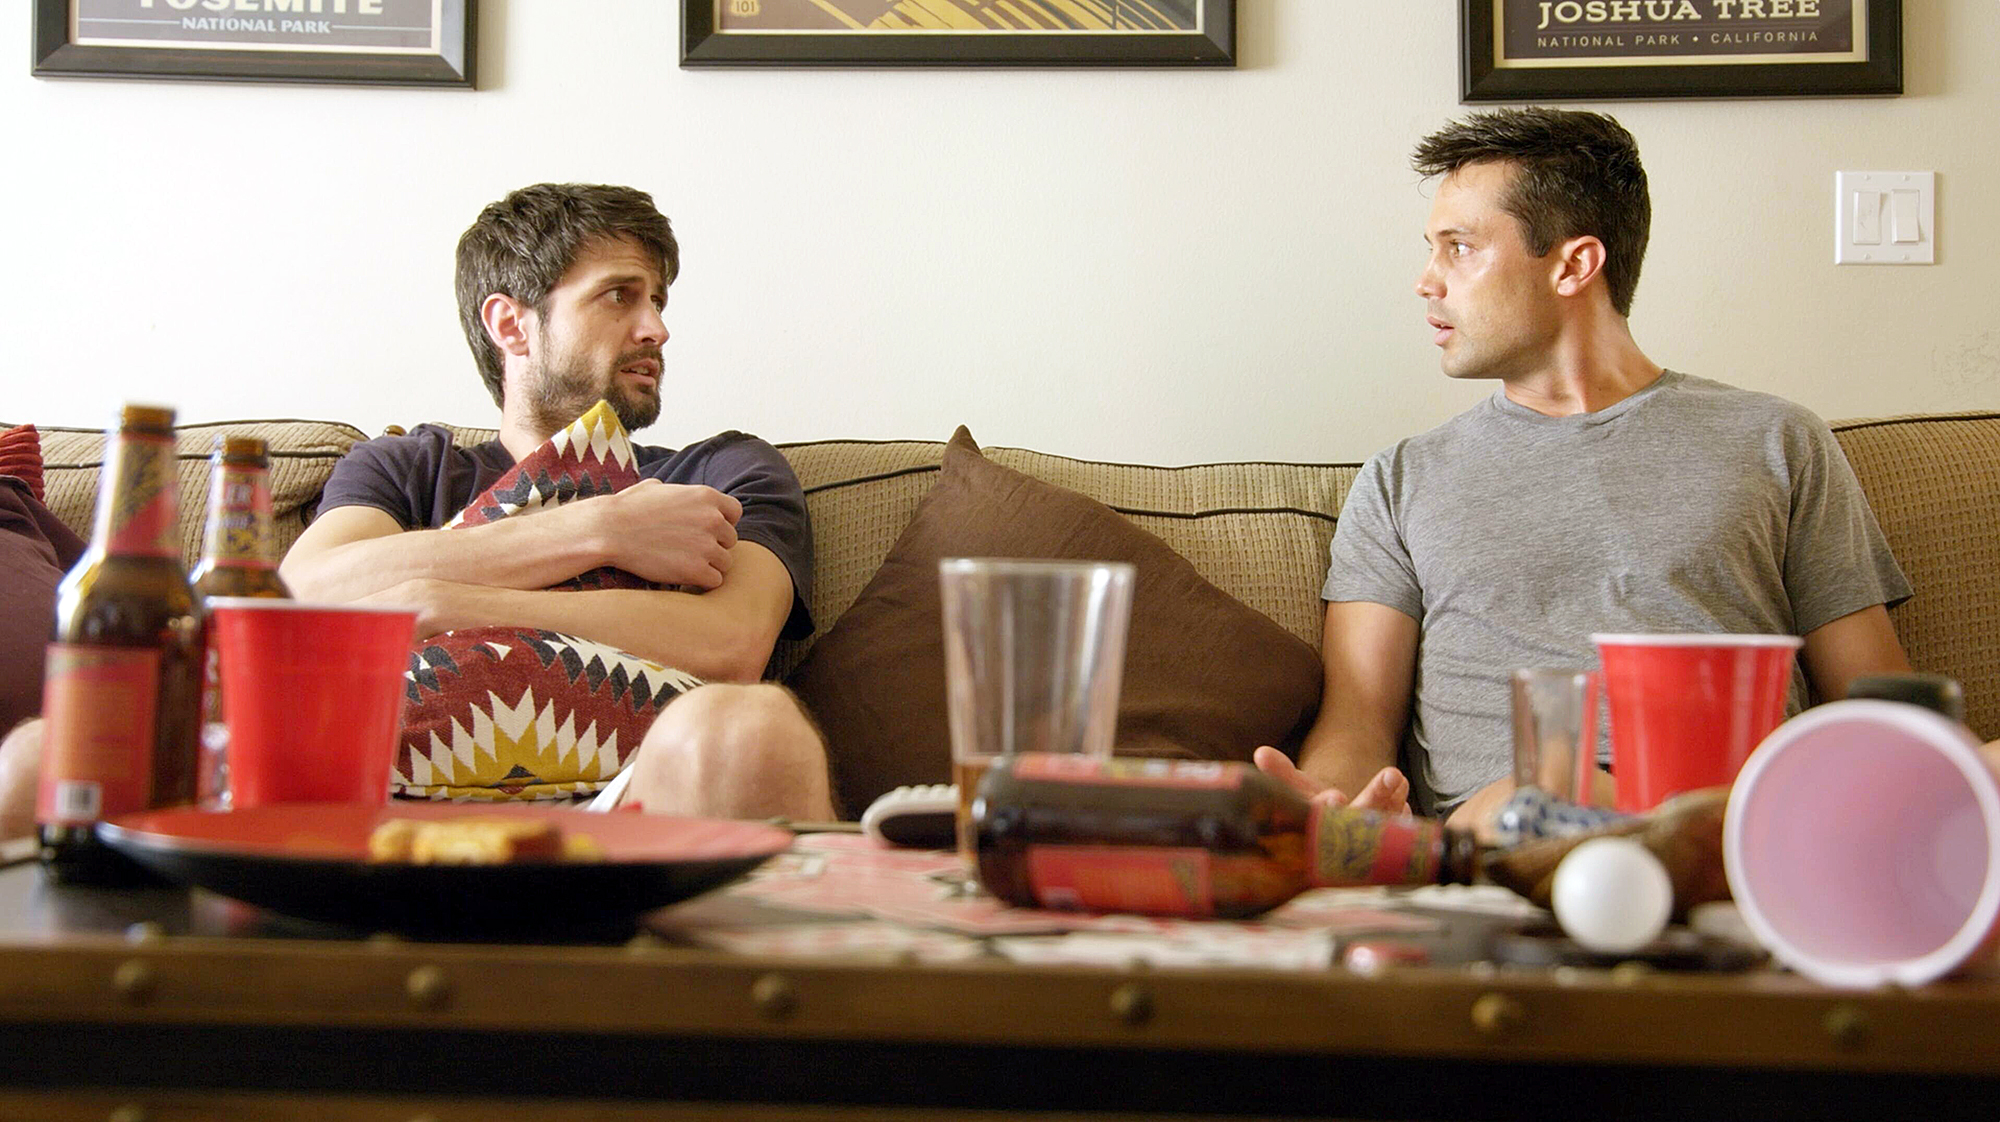 James Lafferty and Stephen Collettis Racy New Show Everyone Is Doing Great May Surprise One Tree Hill Fans